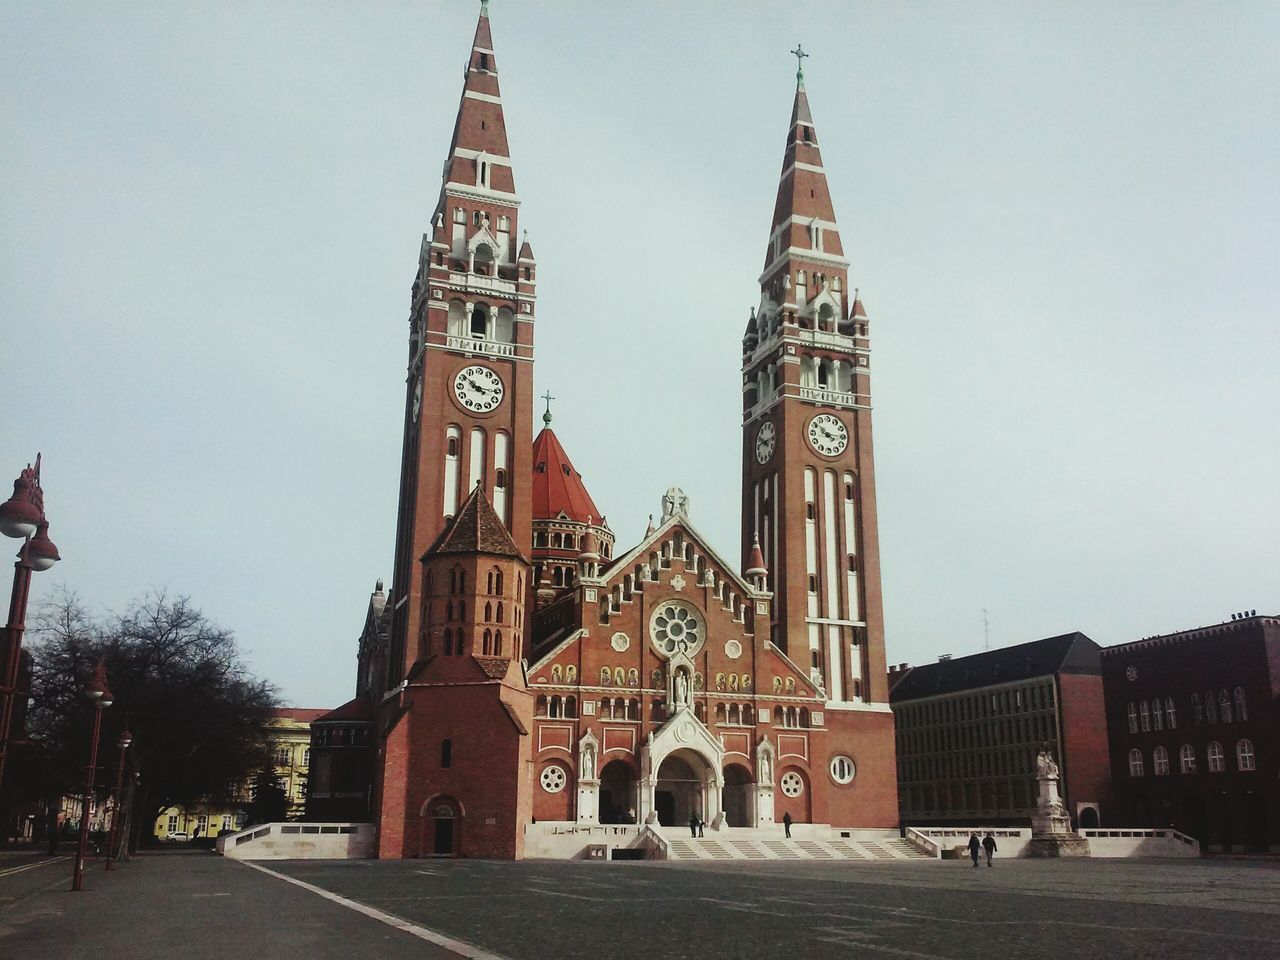 Szeged Hungary Dome Of Szeged Beautiful Architecture Sunday Dóm Tér Trip Photo No Cloud In The Sky Votive Church Church Dome Square